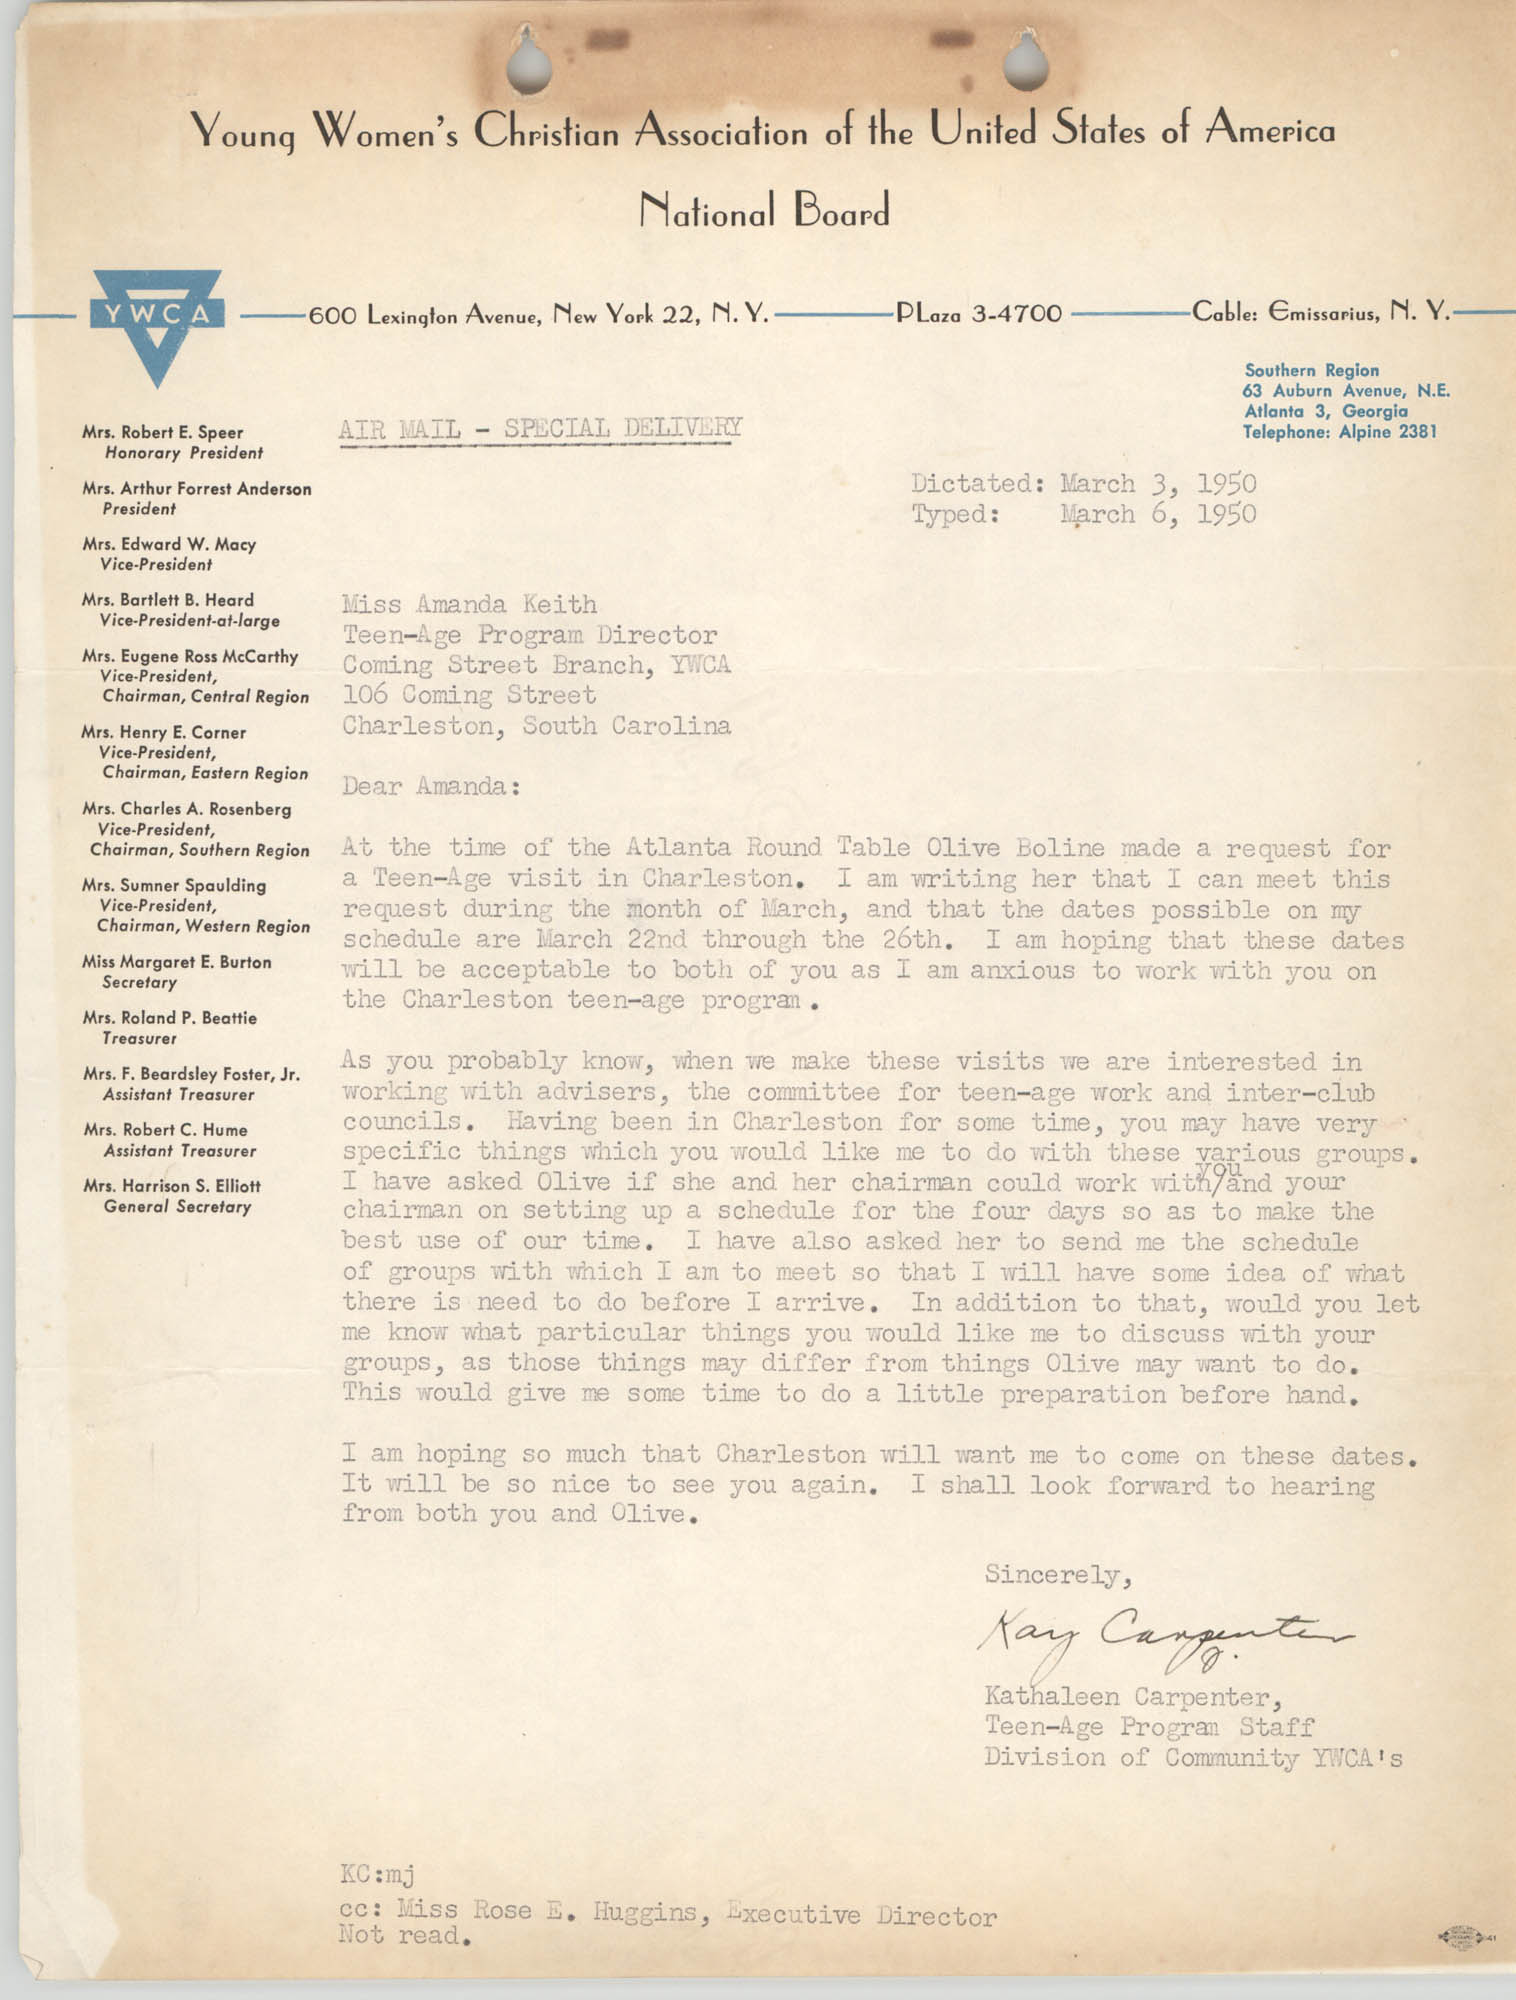 Letter from Kathaleen Carpenter to Amanda Keith, March 6, 1950